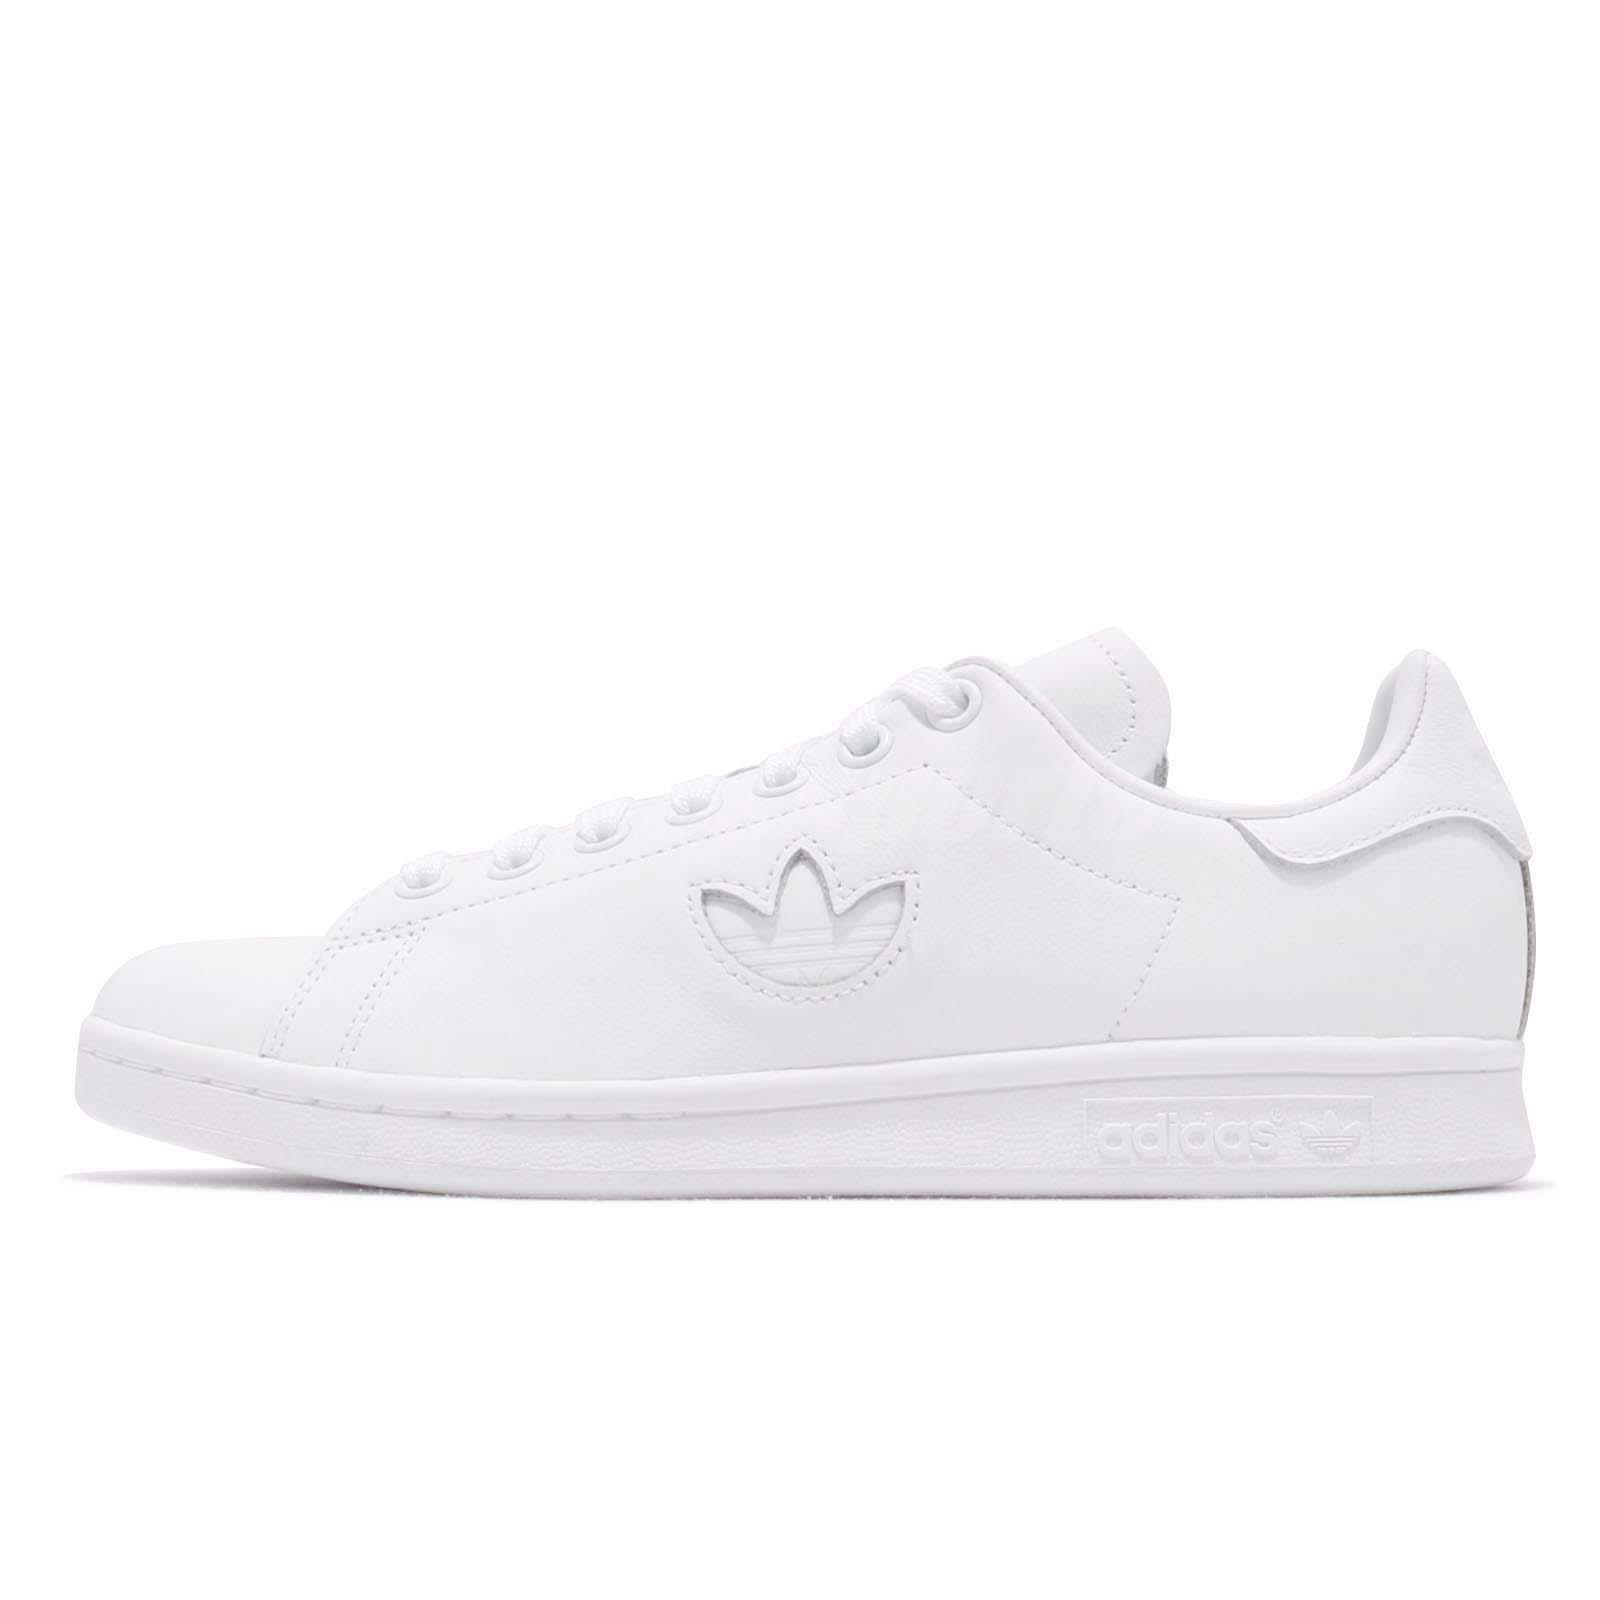 Details about adidas Originals Stan Smith Triple White Men Women Casual Lifestyle Shoes BD7451